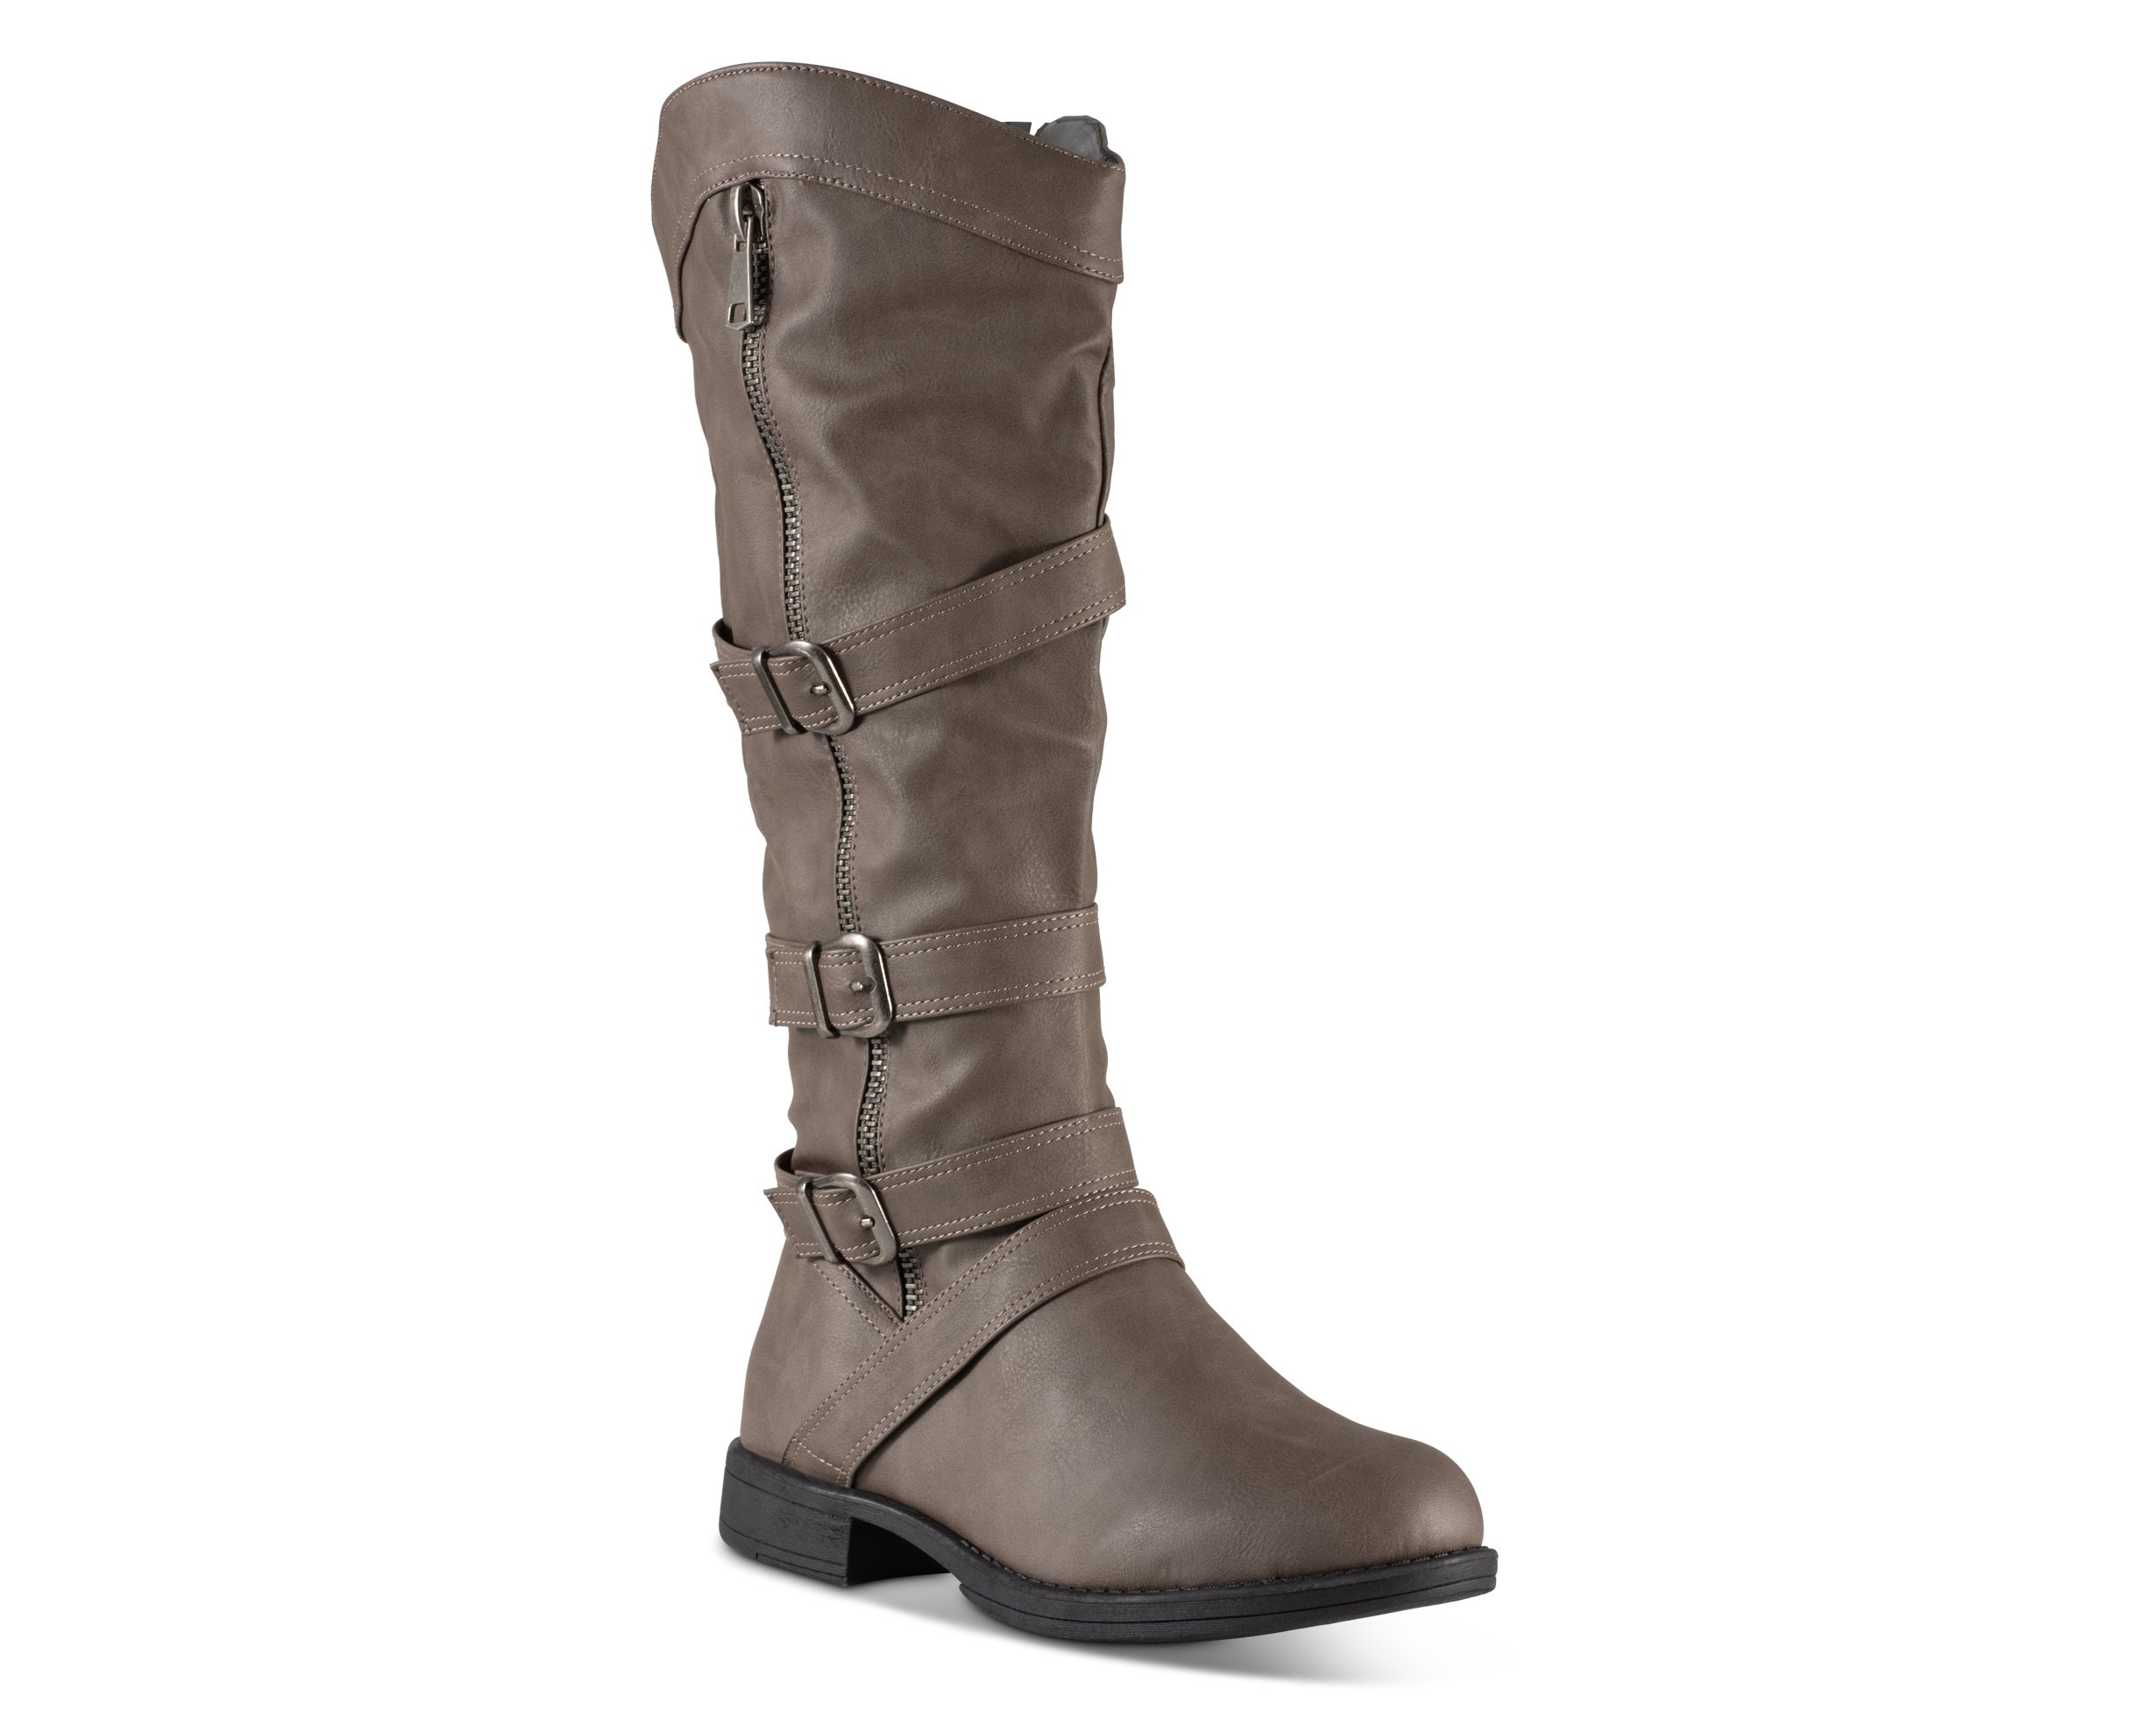 Twisted Women's Amira Wide Width/Wide Calf Faux Leather Knee-High Western Flat Riding Boot with Multi Buckle Straps - Grey, Size 9